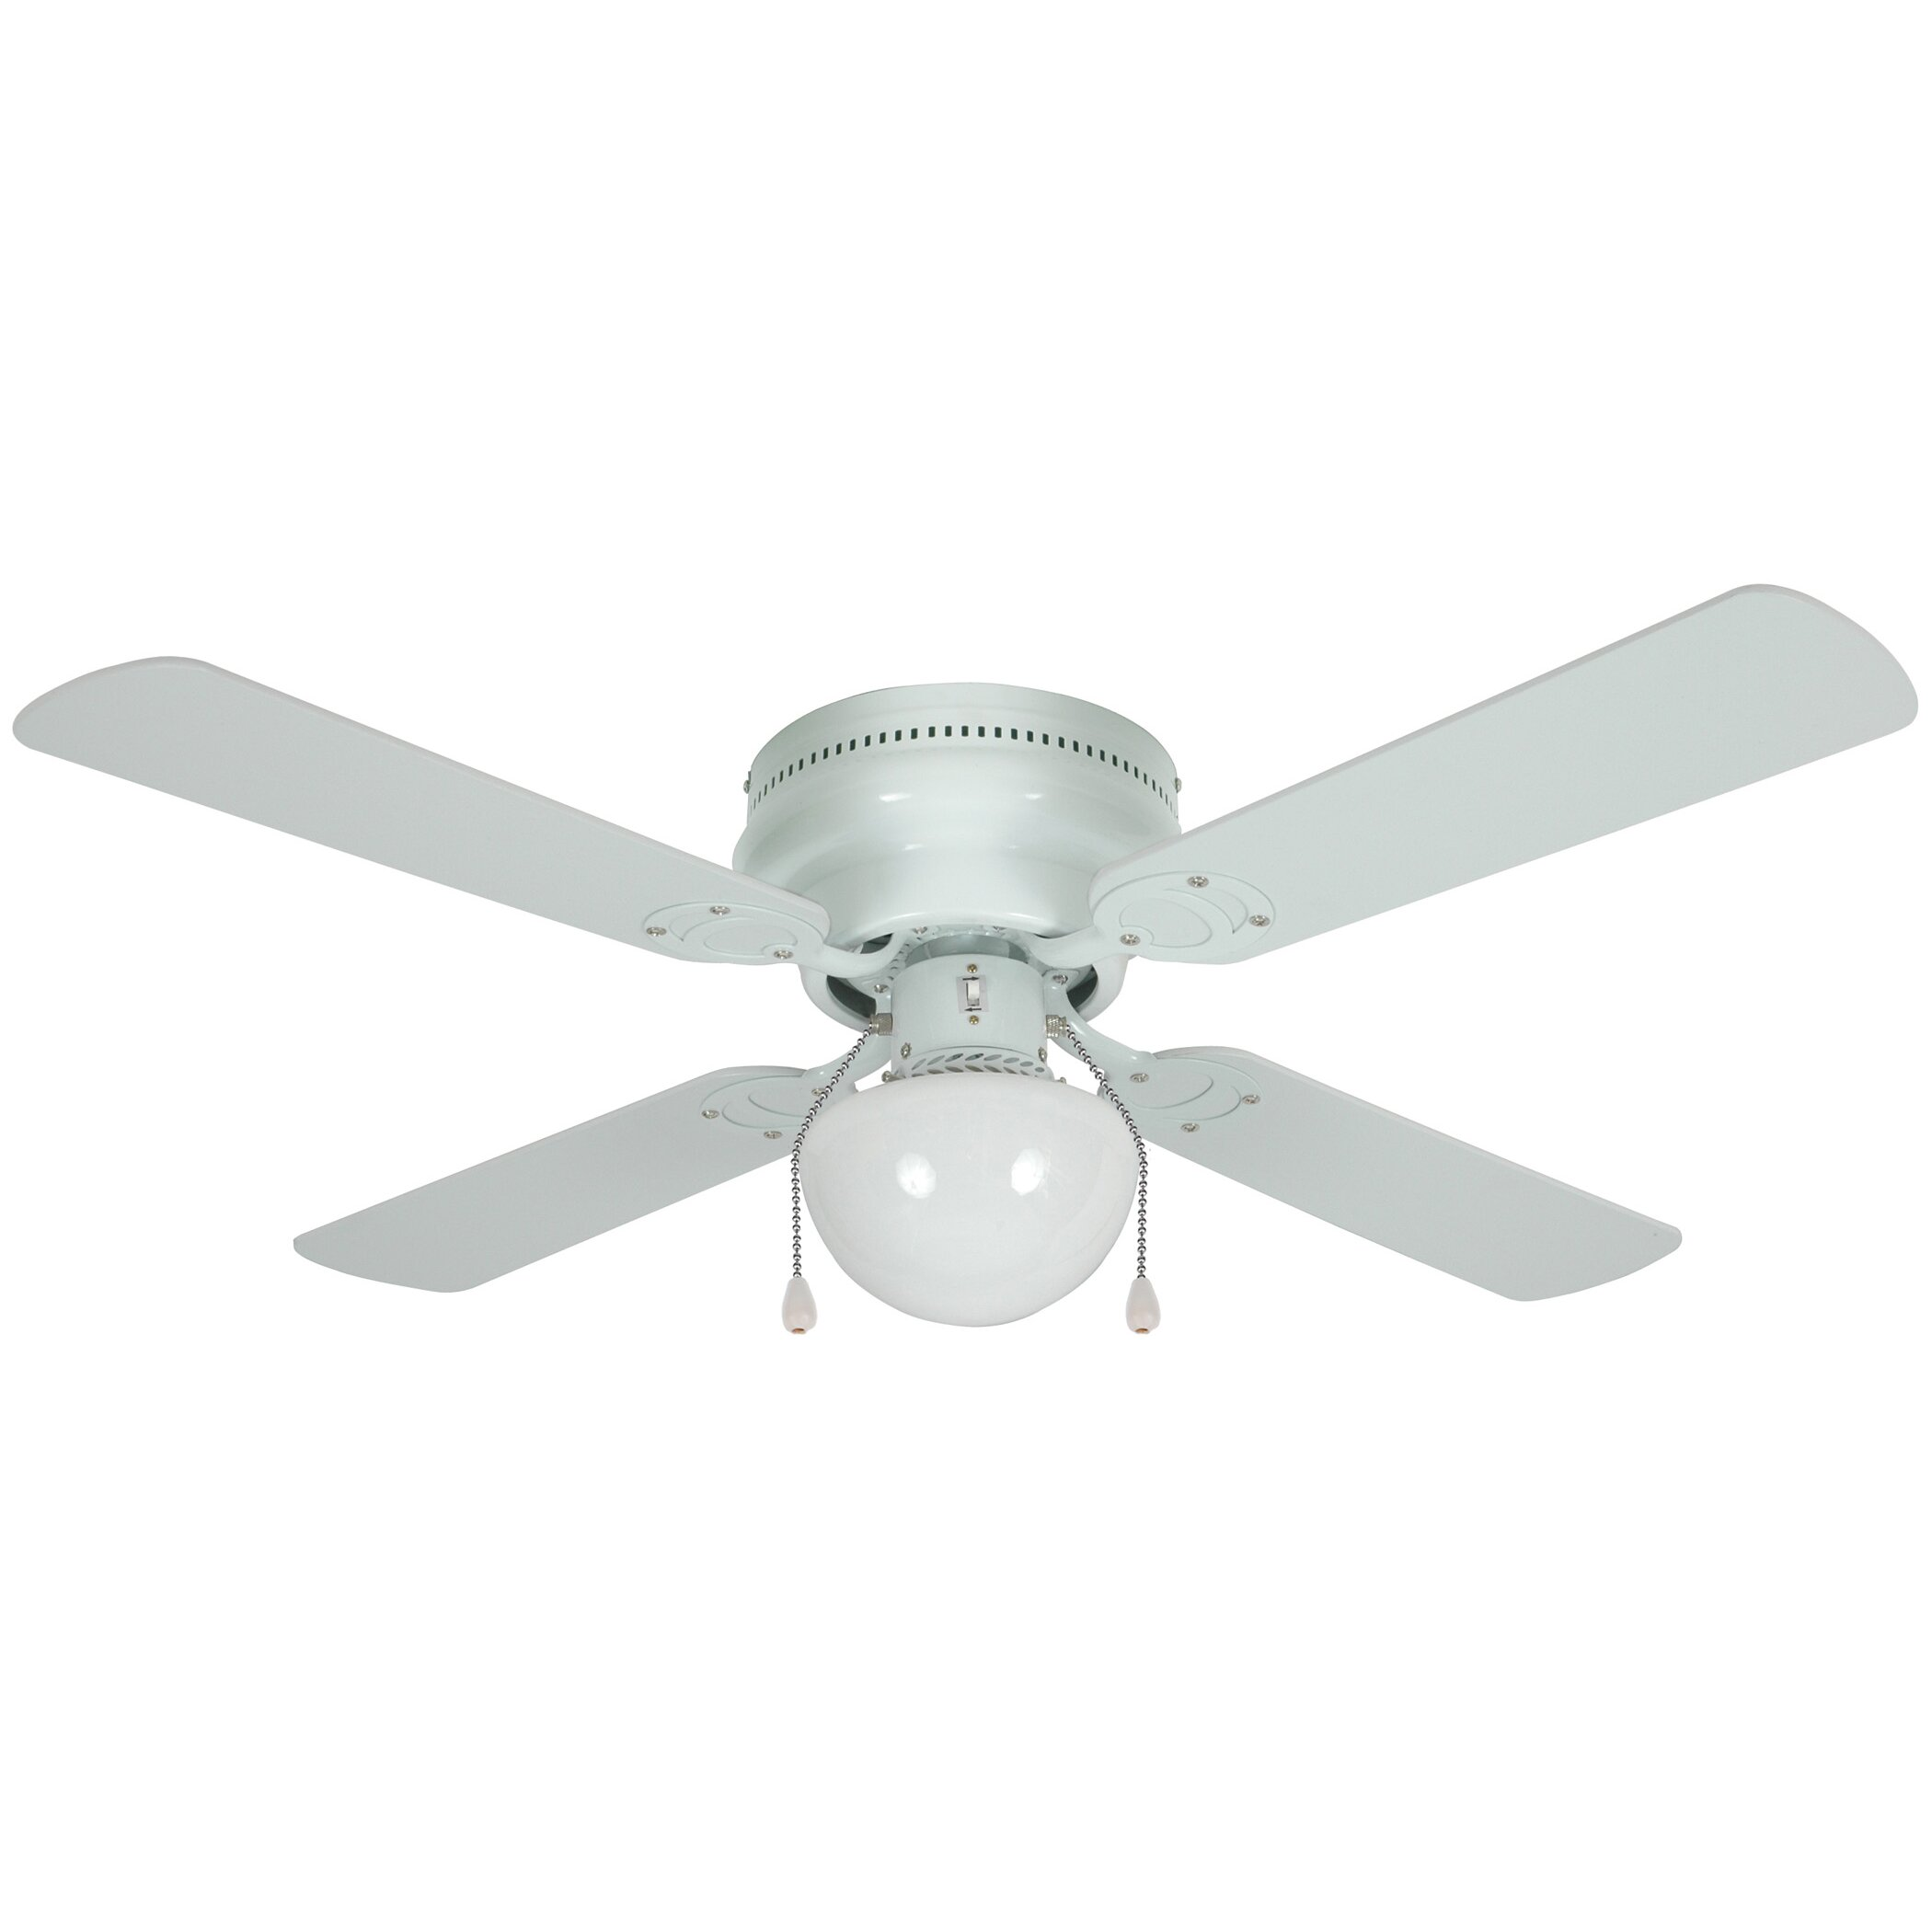 Four Blade Fan : Hardware house quot trinidad blade ceiling fan reviews